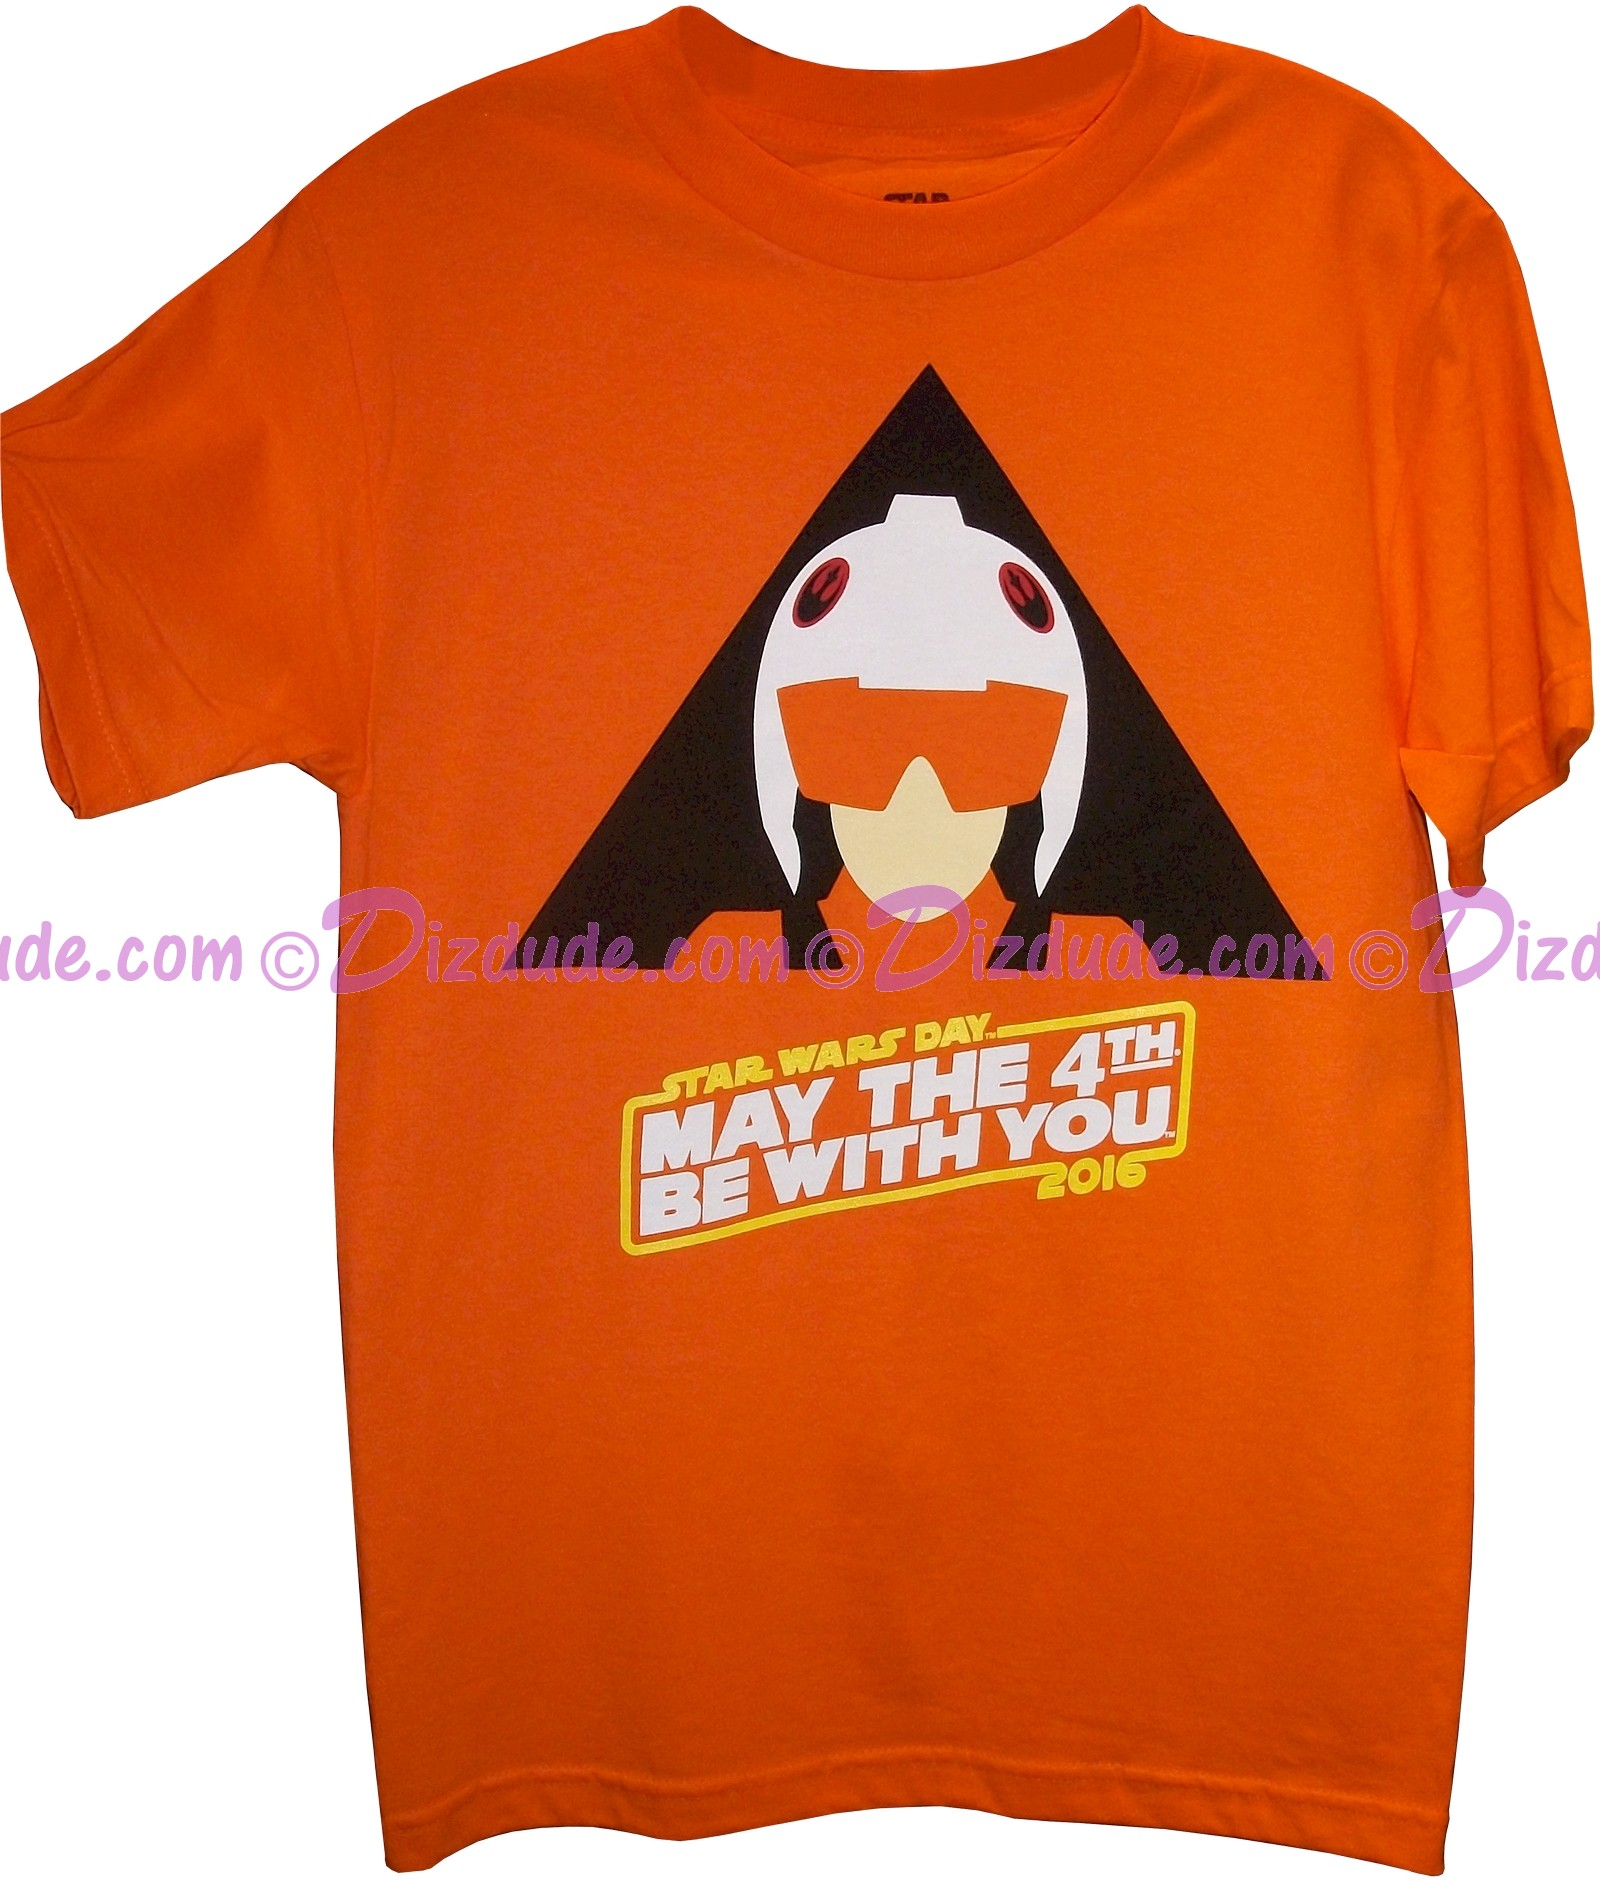 May The 4th Be With You Merchandise: Star Wars Day May The 4th Be With You 2016